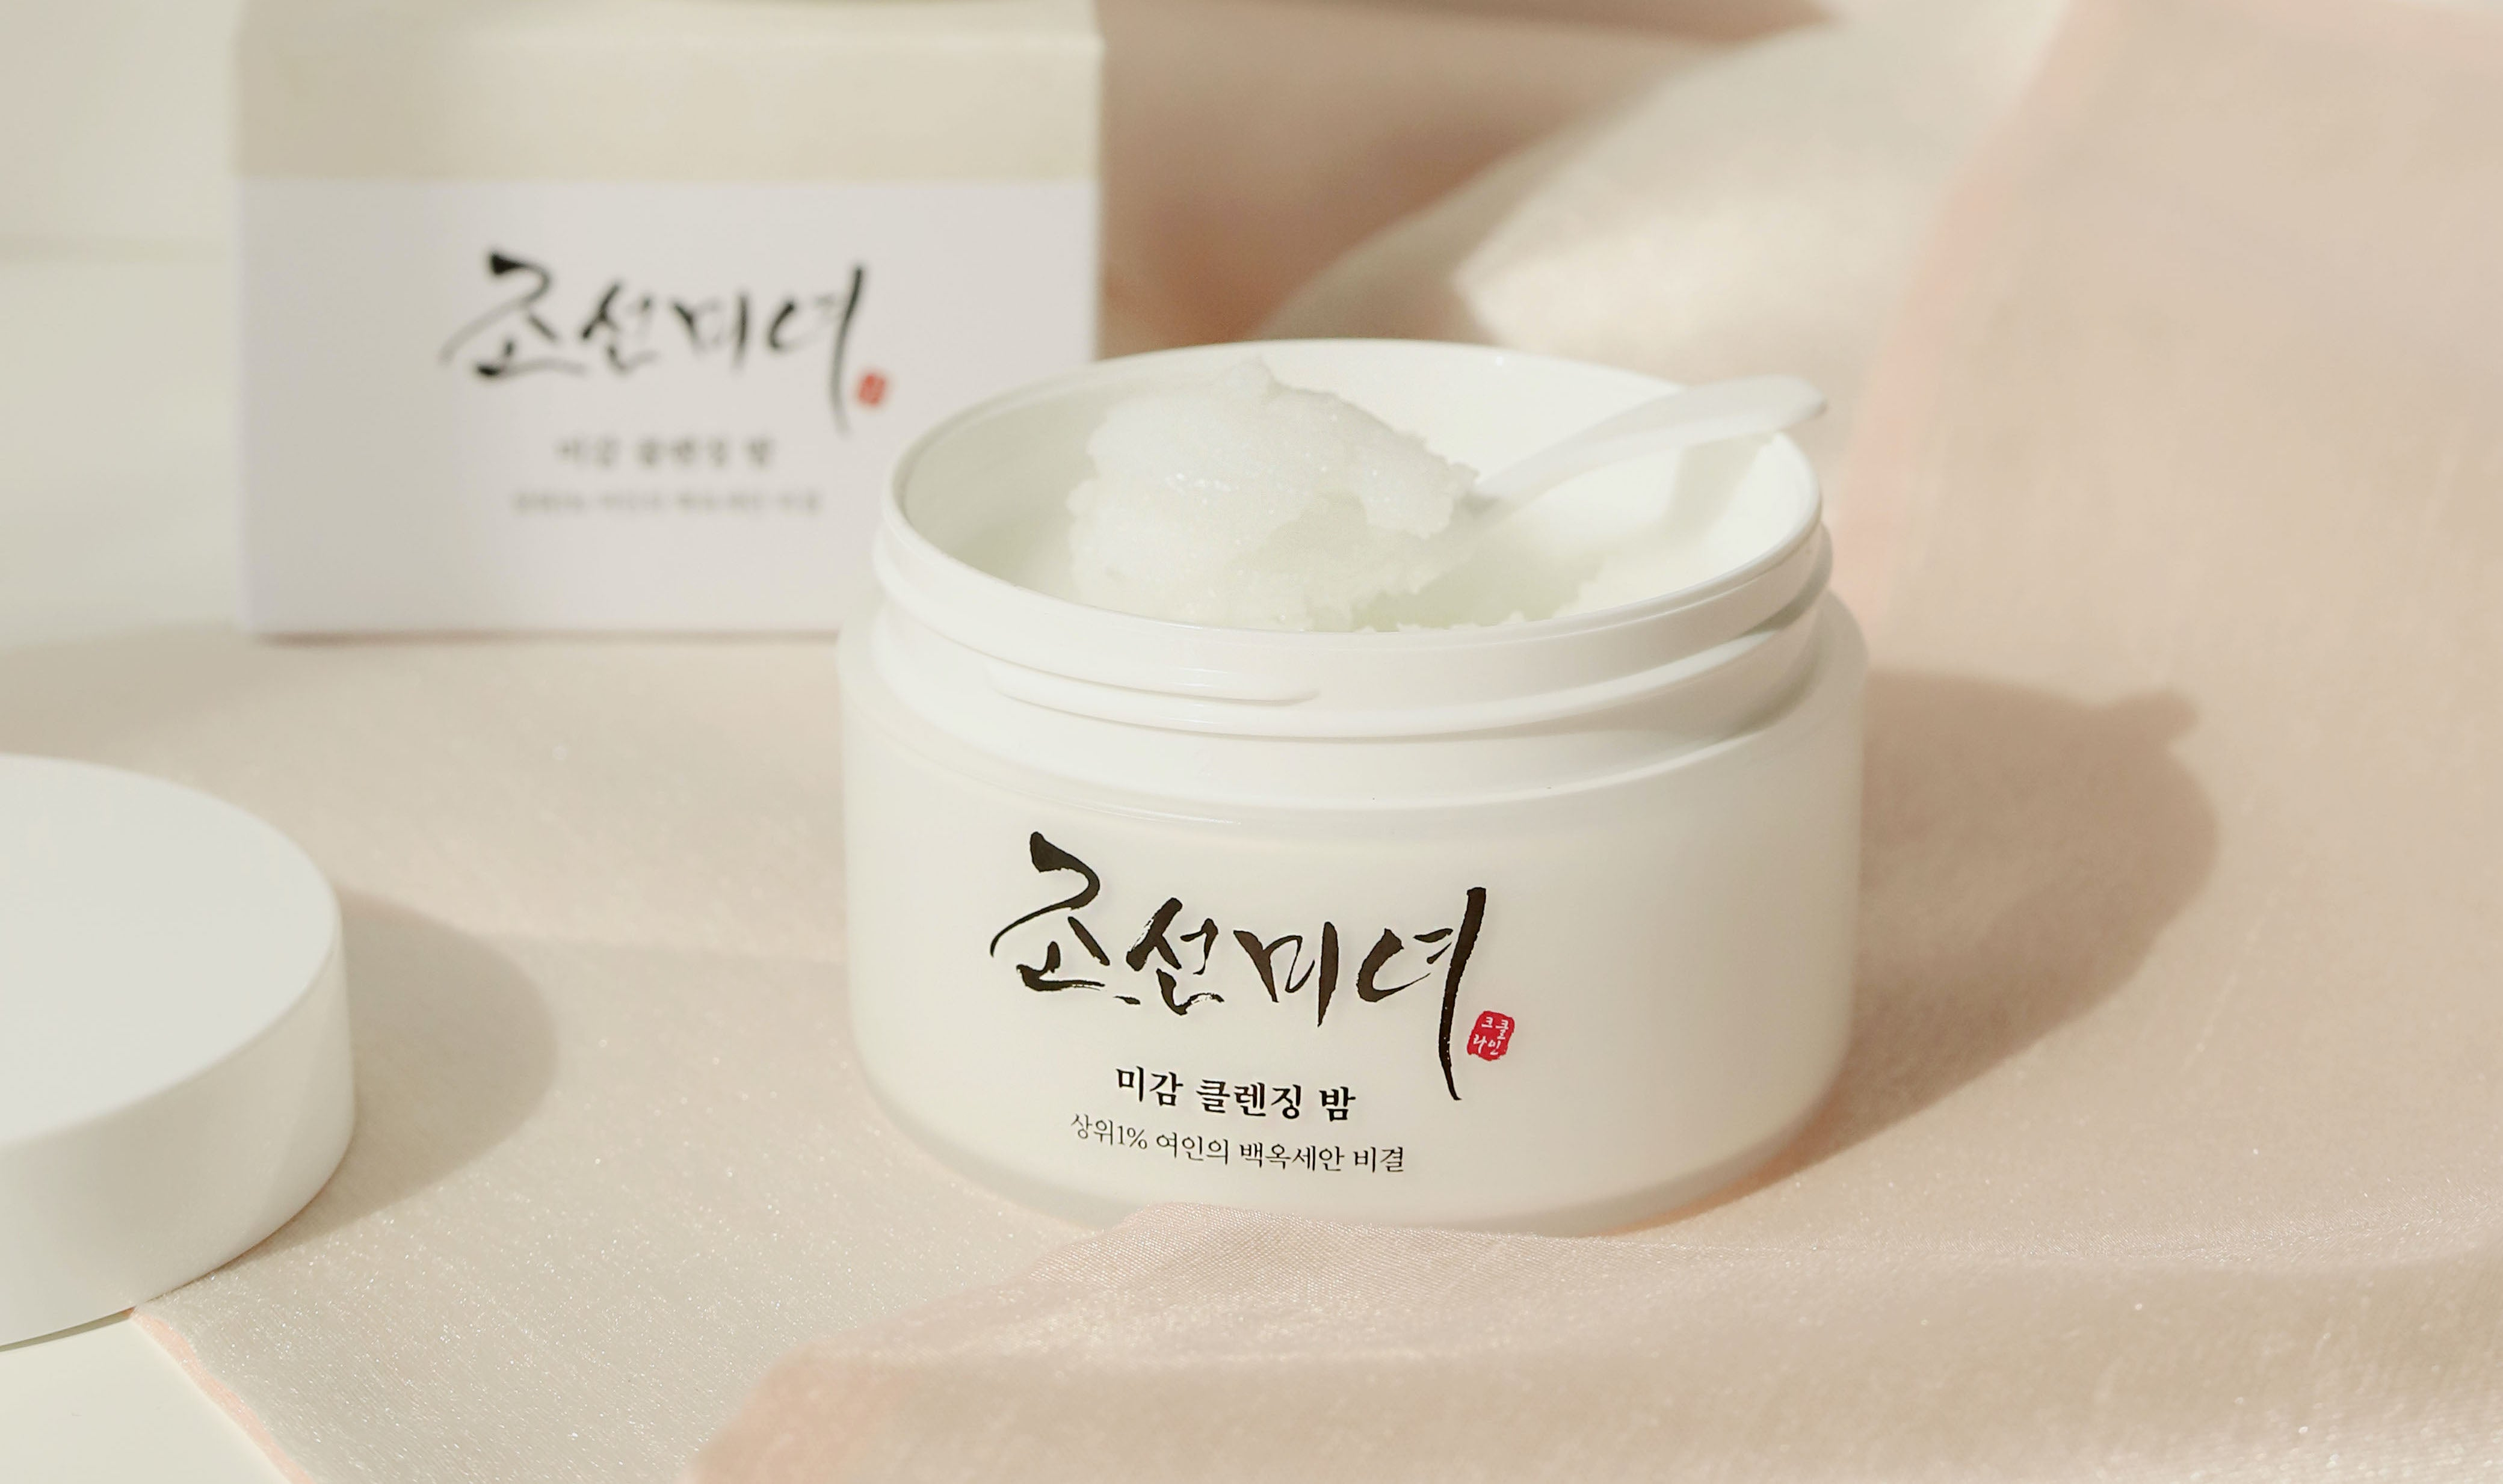 beauty-of-joseon-Radiance-cleansing-balm-fermented-skincare